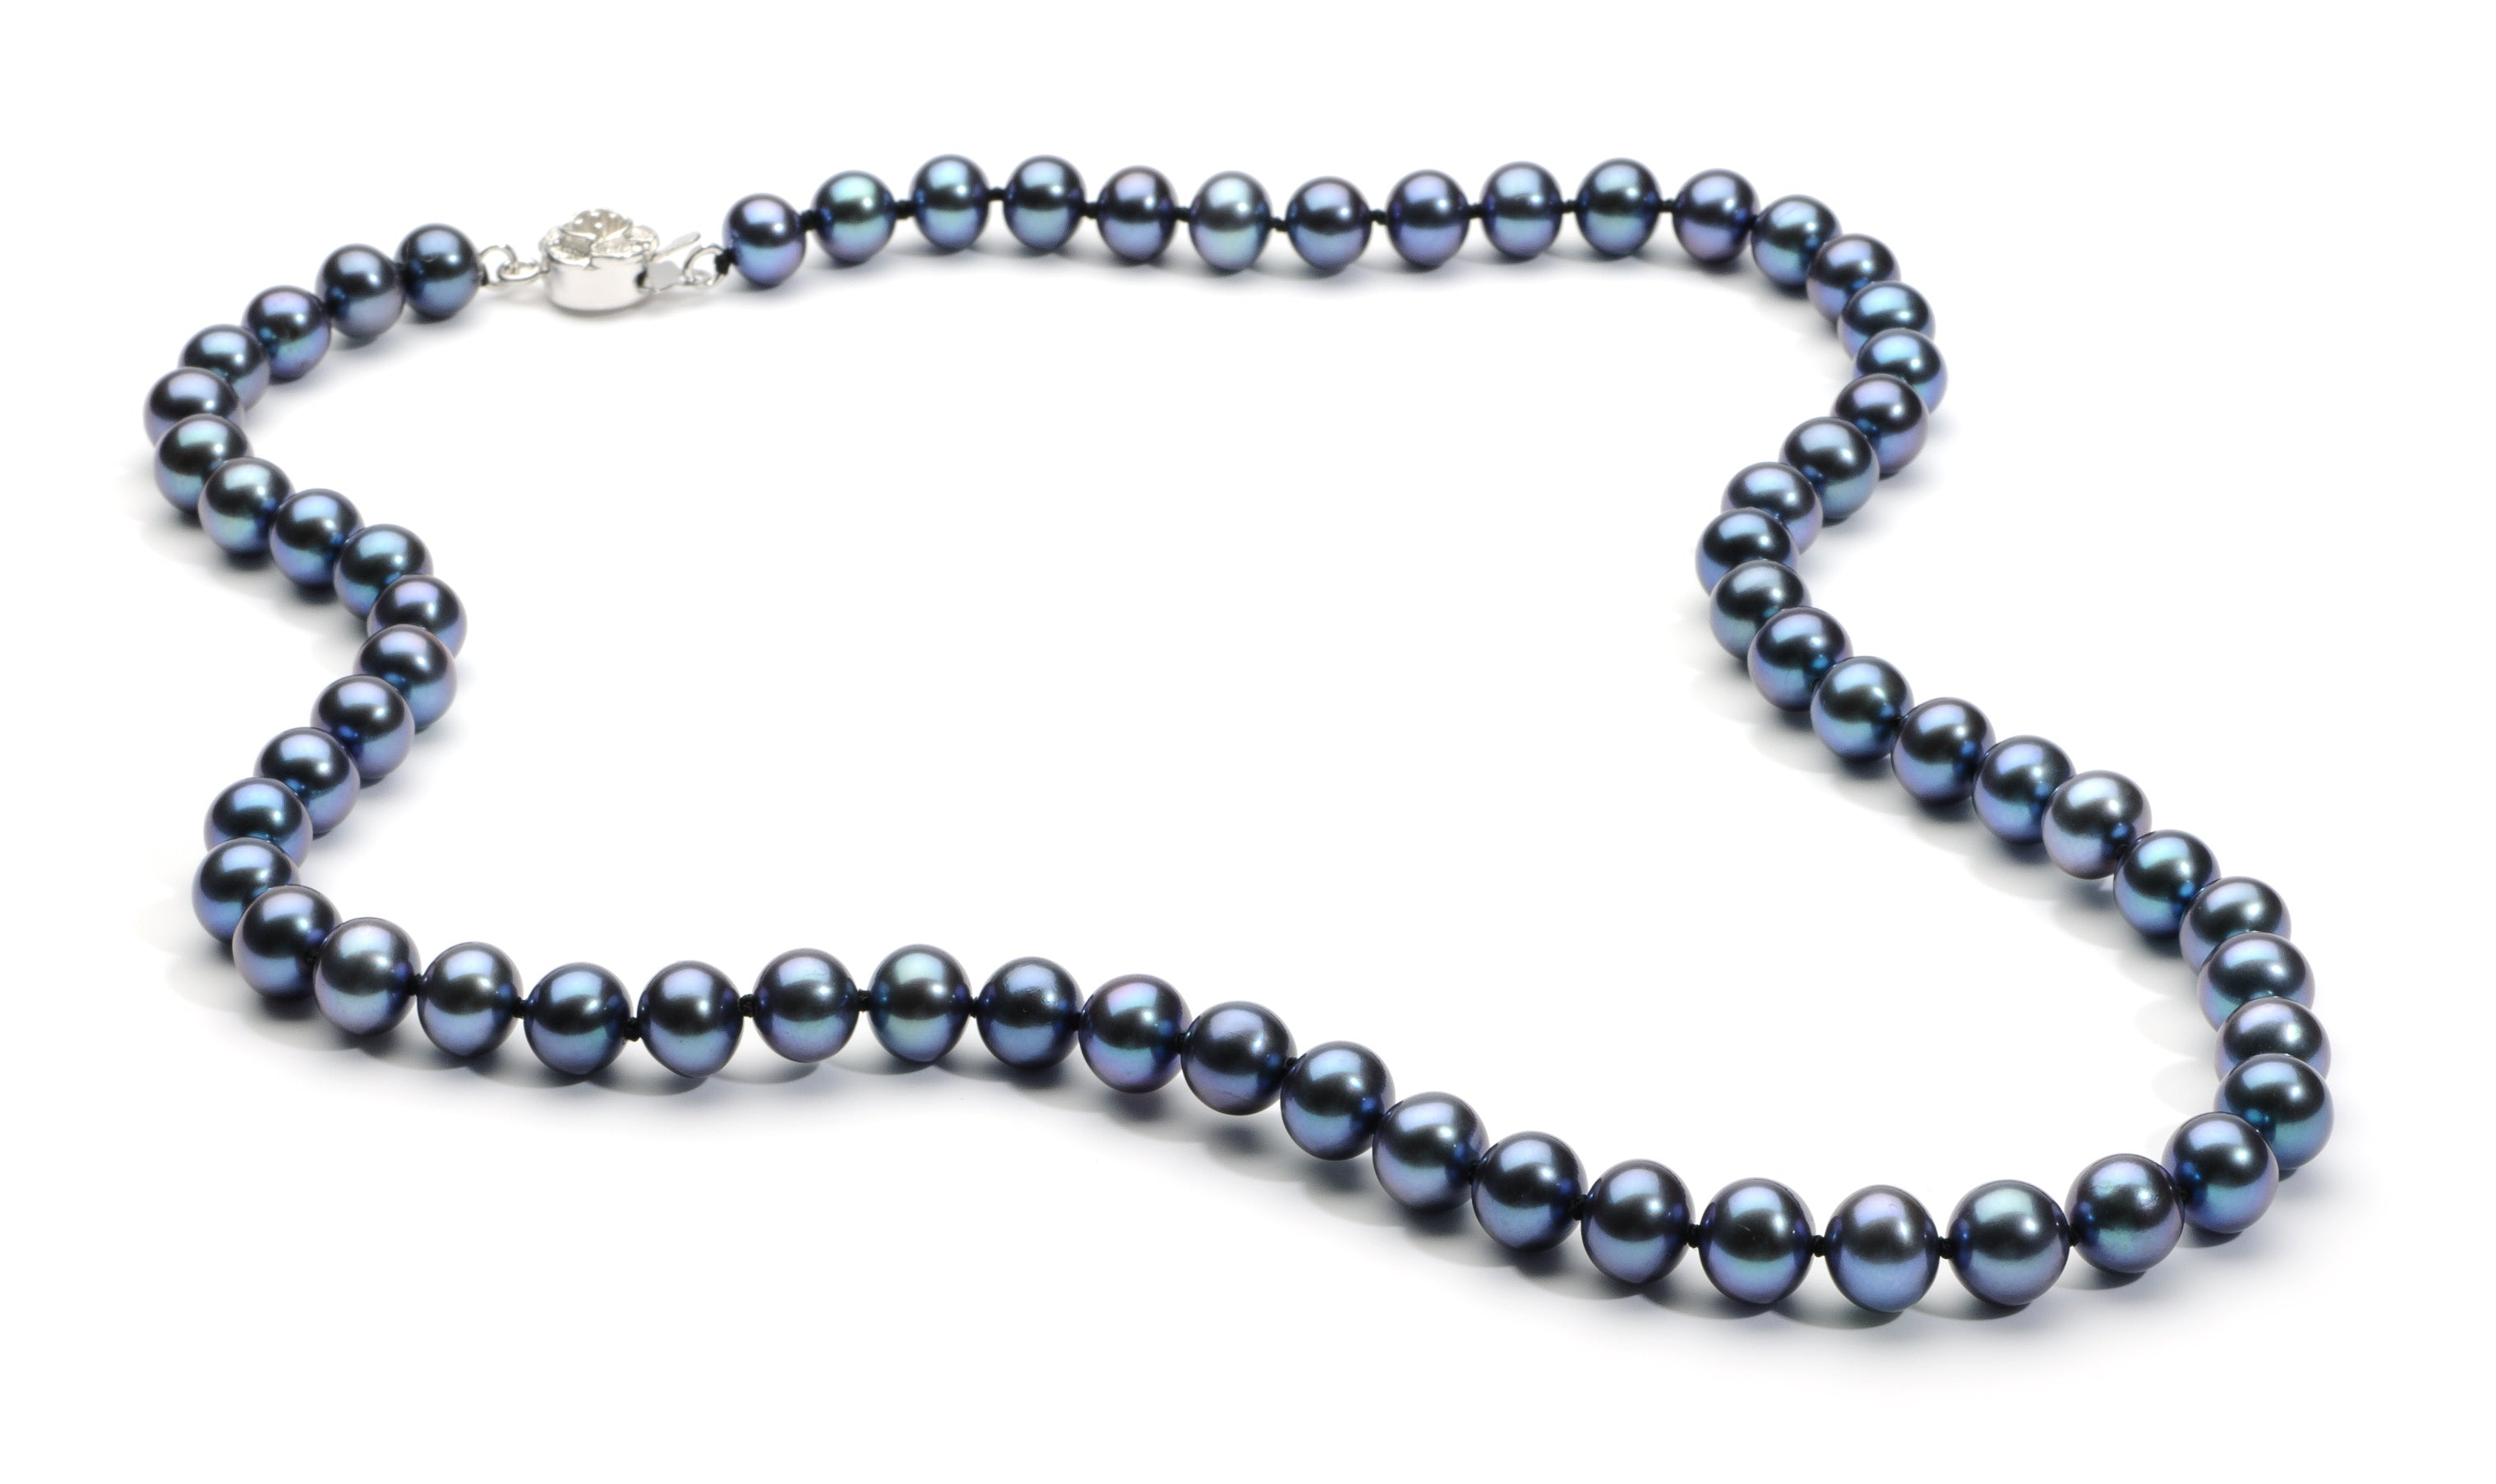 7.0-8.0 mm Black Freshwater Pearl Necklace